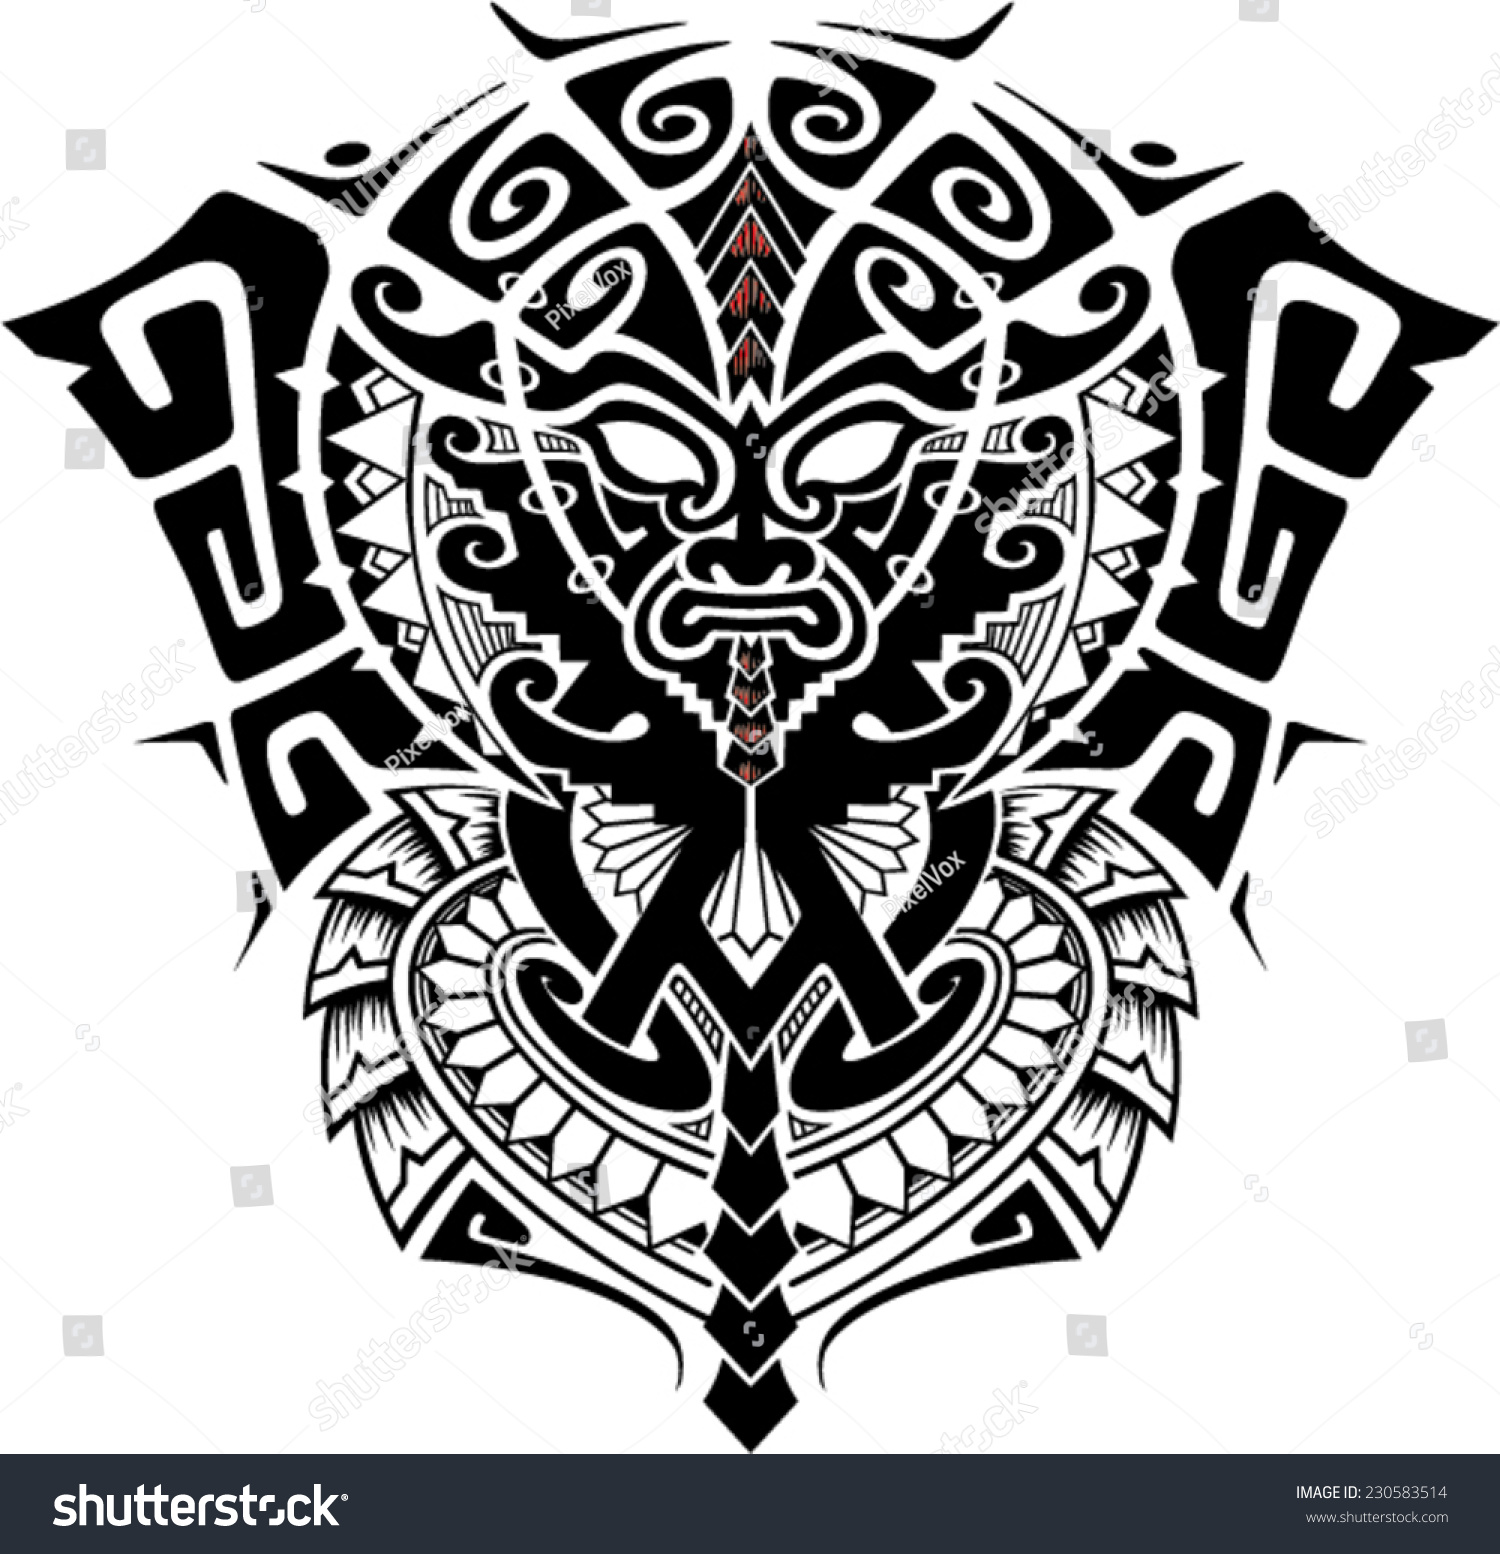 Stock Vector Tribal God Mask With Alpha And Omega Symbol Vector Illust...